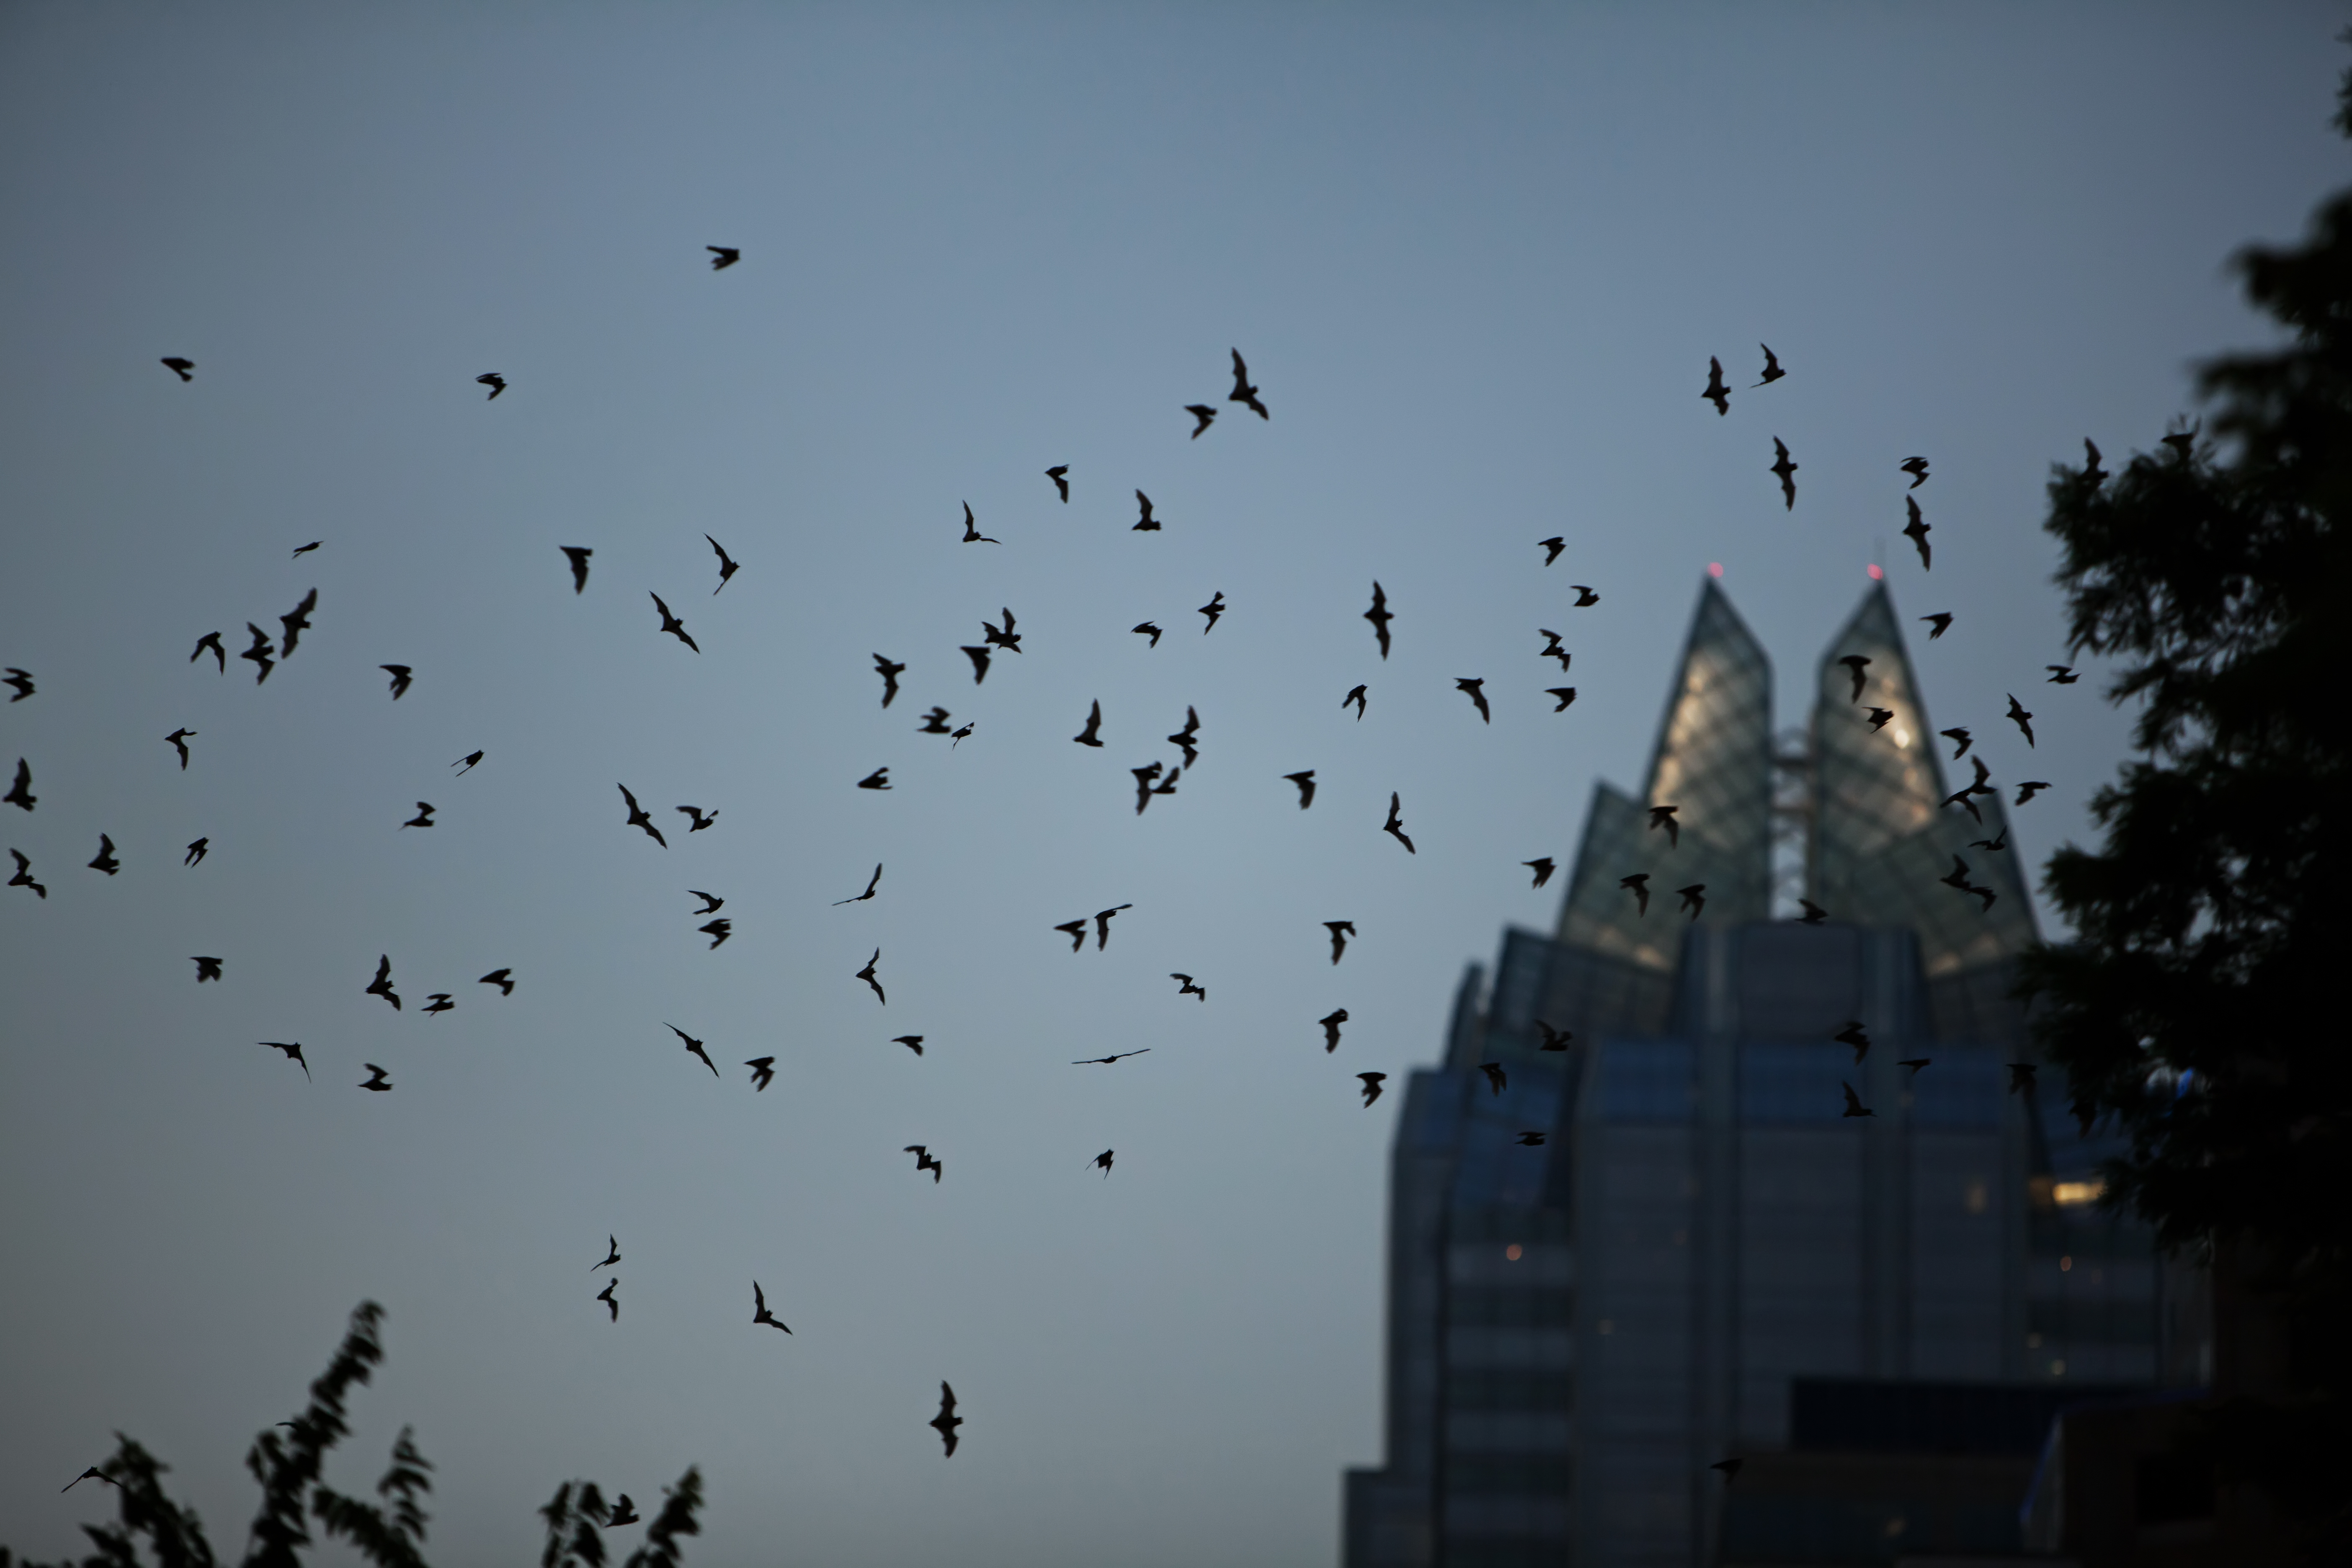 Photograph shot at dusk. Bats are flying around the top of a building with two pointed glass towers on top.